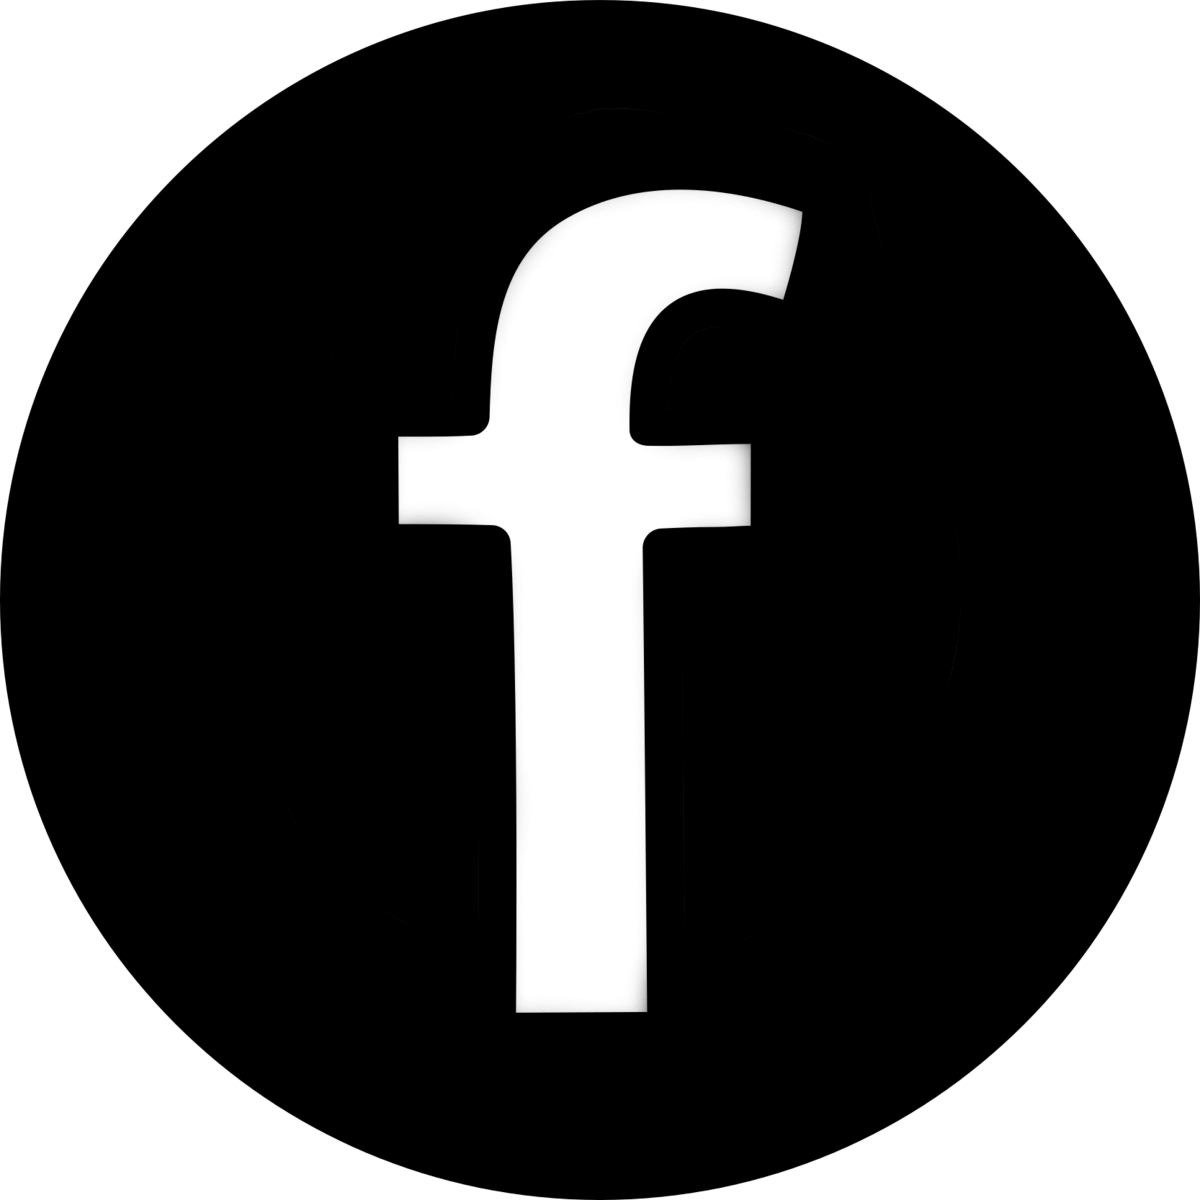 carve_facebook_icon.png